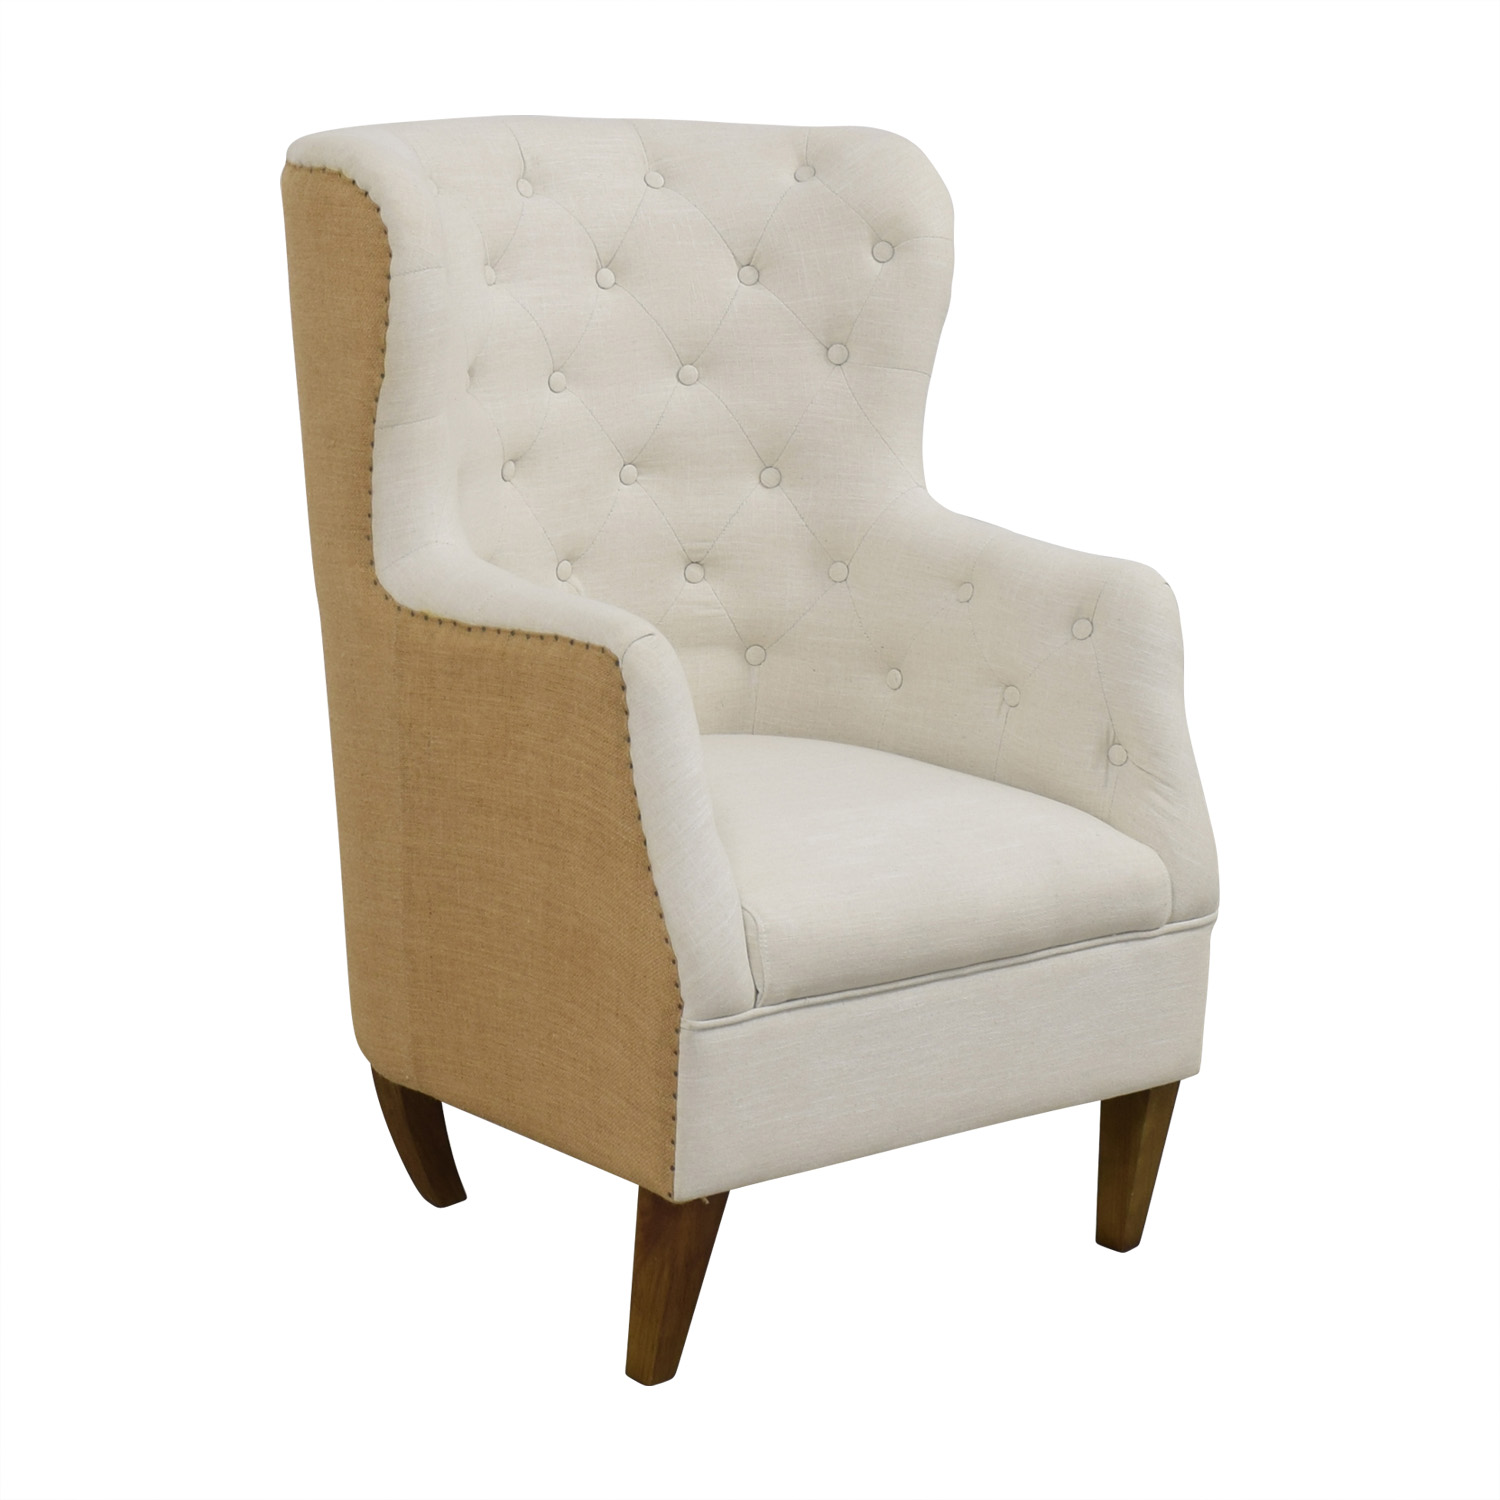 shop Classic Concepts White Tufted and Tan Back Wing Back Accent Chair Classic Concepts Chairs